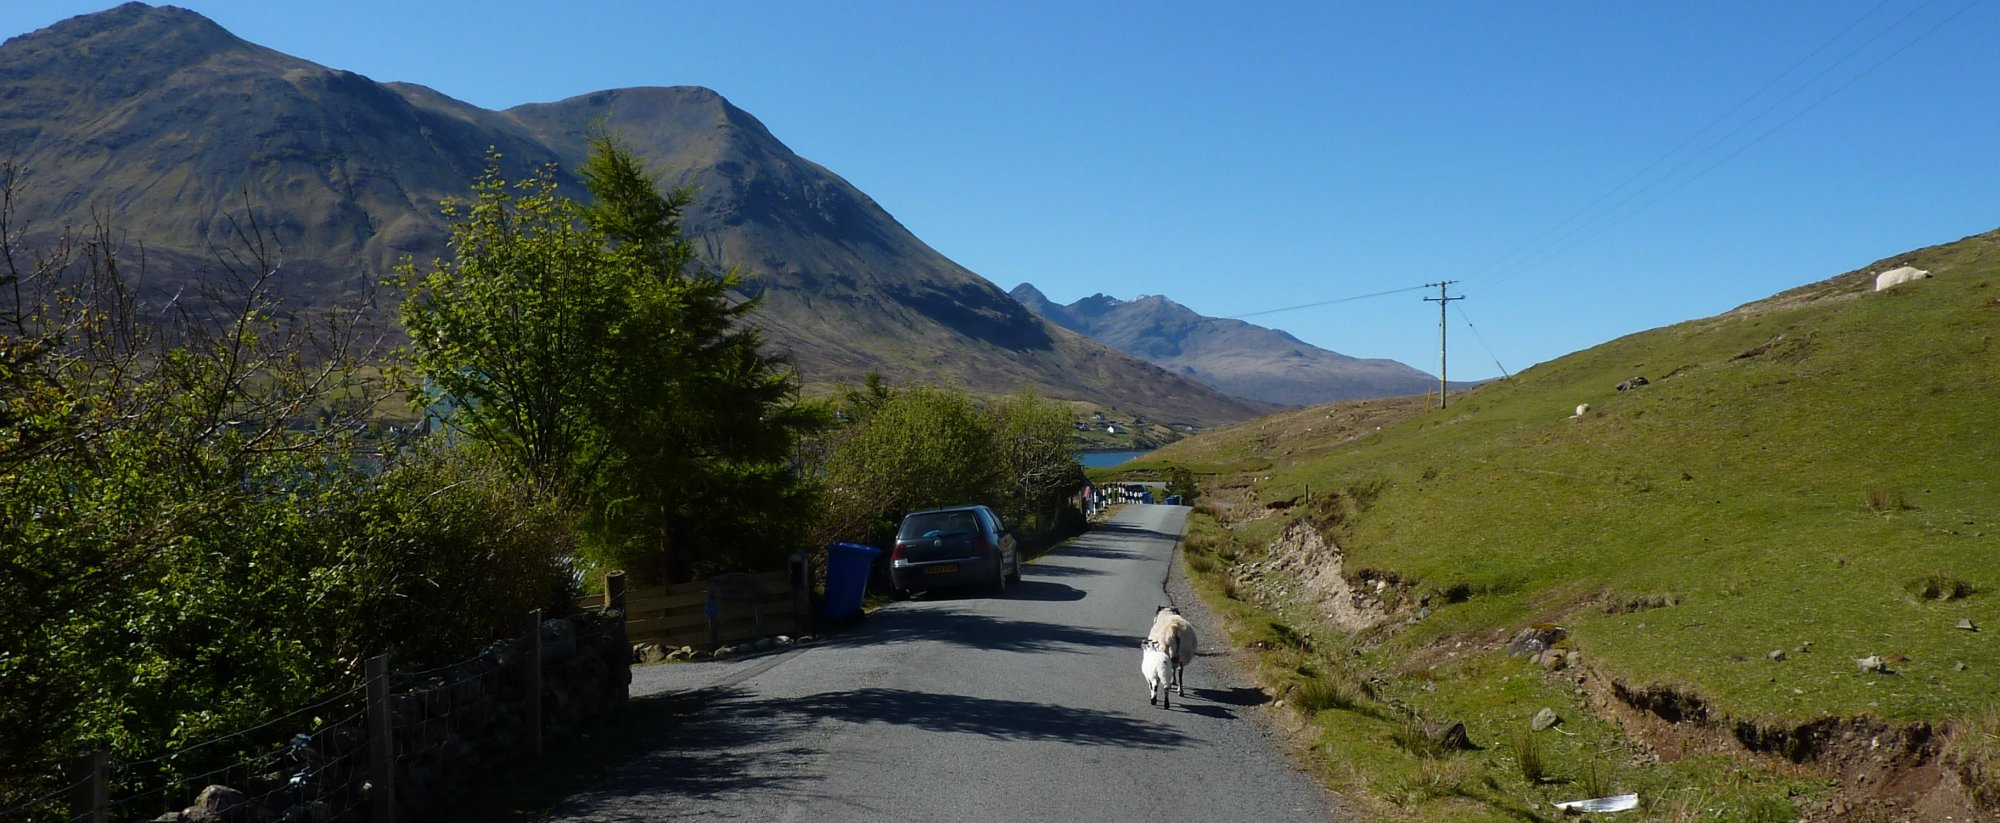 Into the sleepy little settlement of Peinachorrain and the end of the road walking